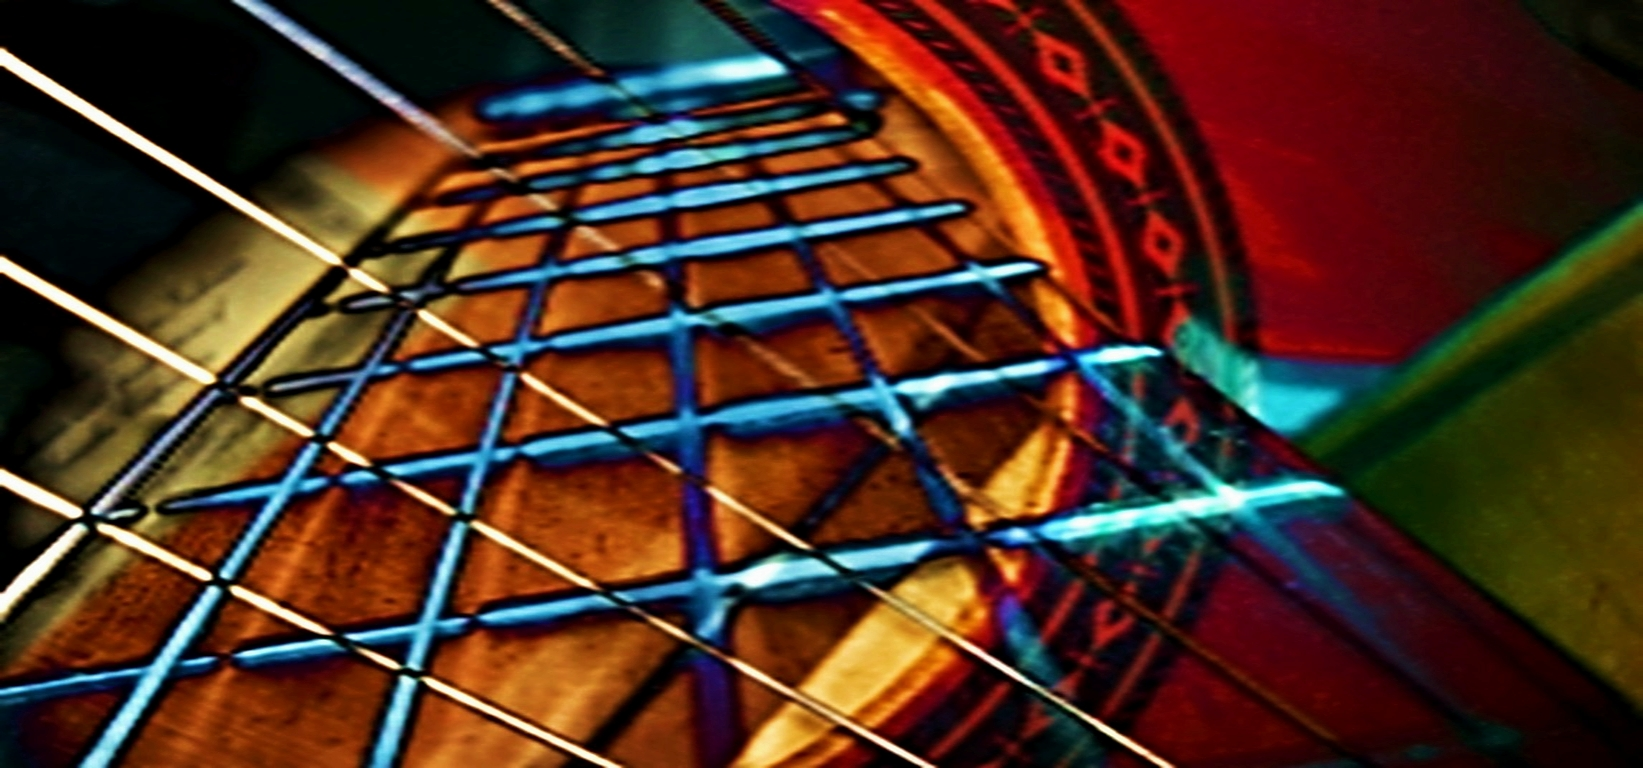 Abstract Photograph: 'Music enables us to travel back in Time' by artist and photographer John Russell